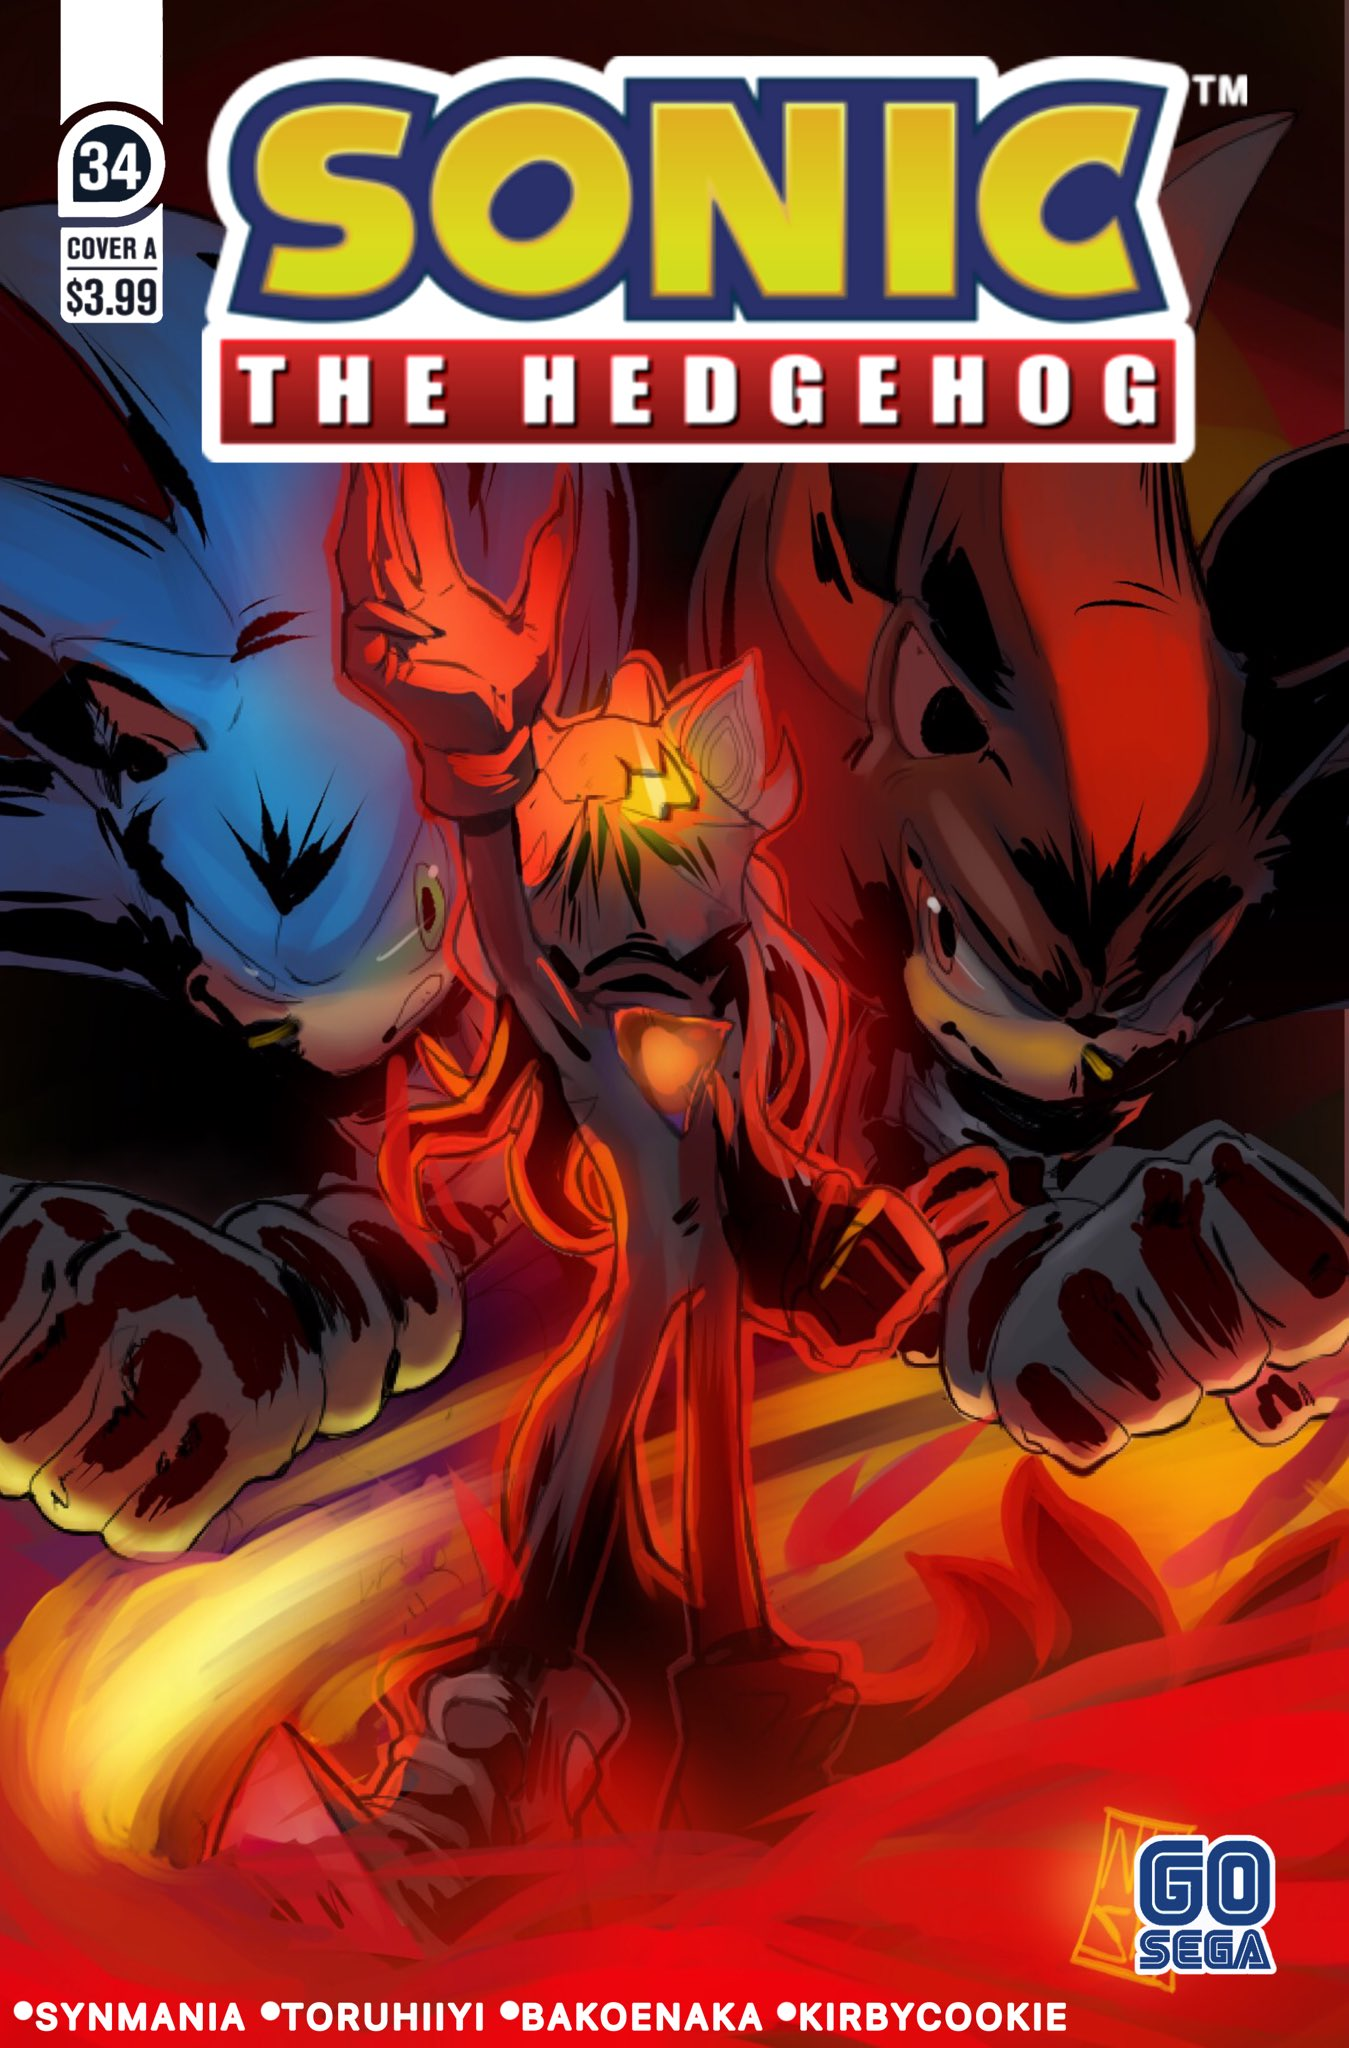 Idwsonicnews Idw Sonic Covers Previews On Twitter Sonic The Hedgehog 34 Cover A Done By Bakoenaka Sonic Sonicthehedgehog Idwsonic